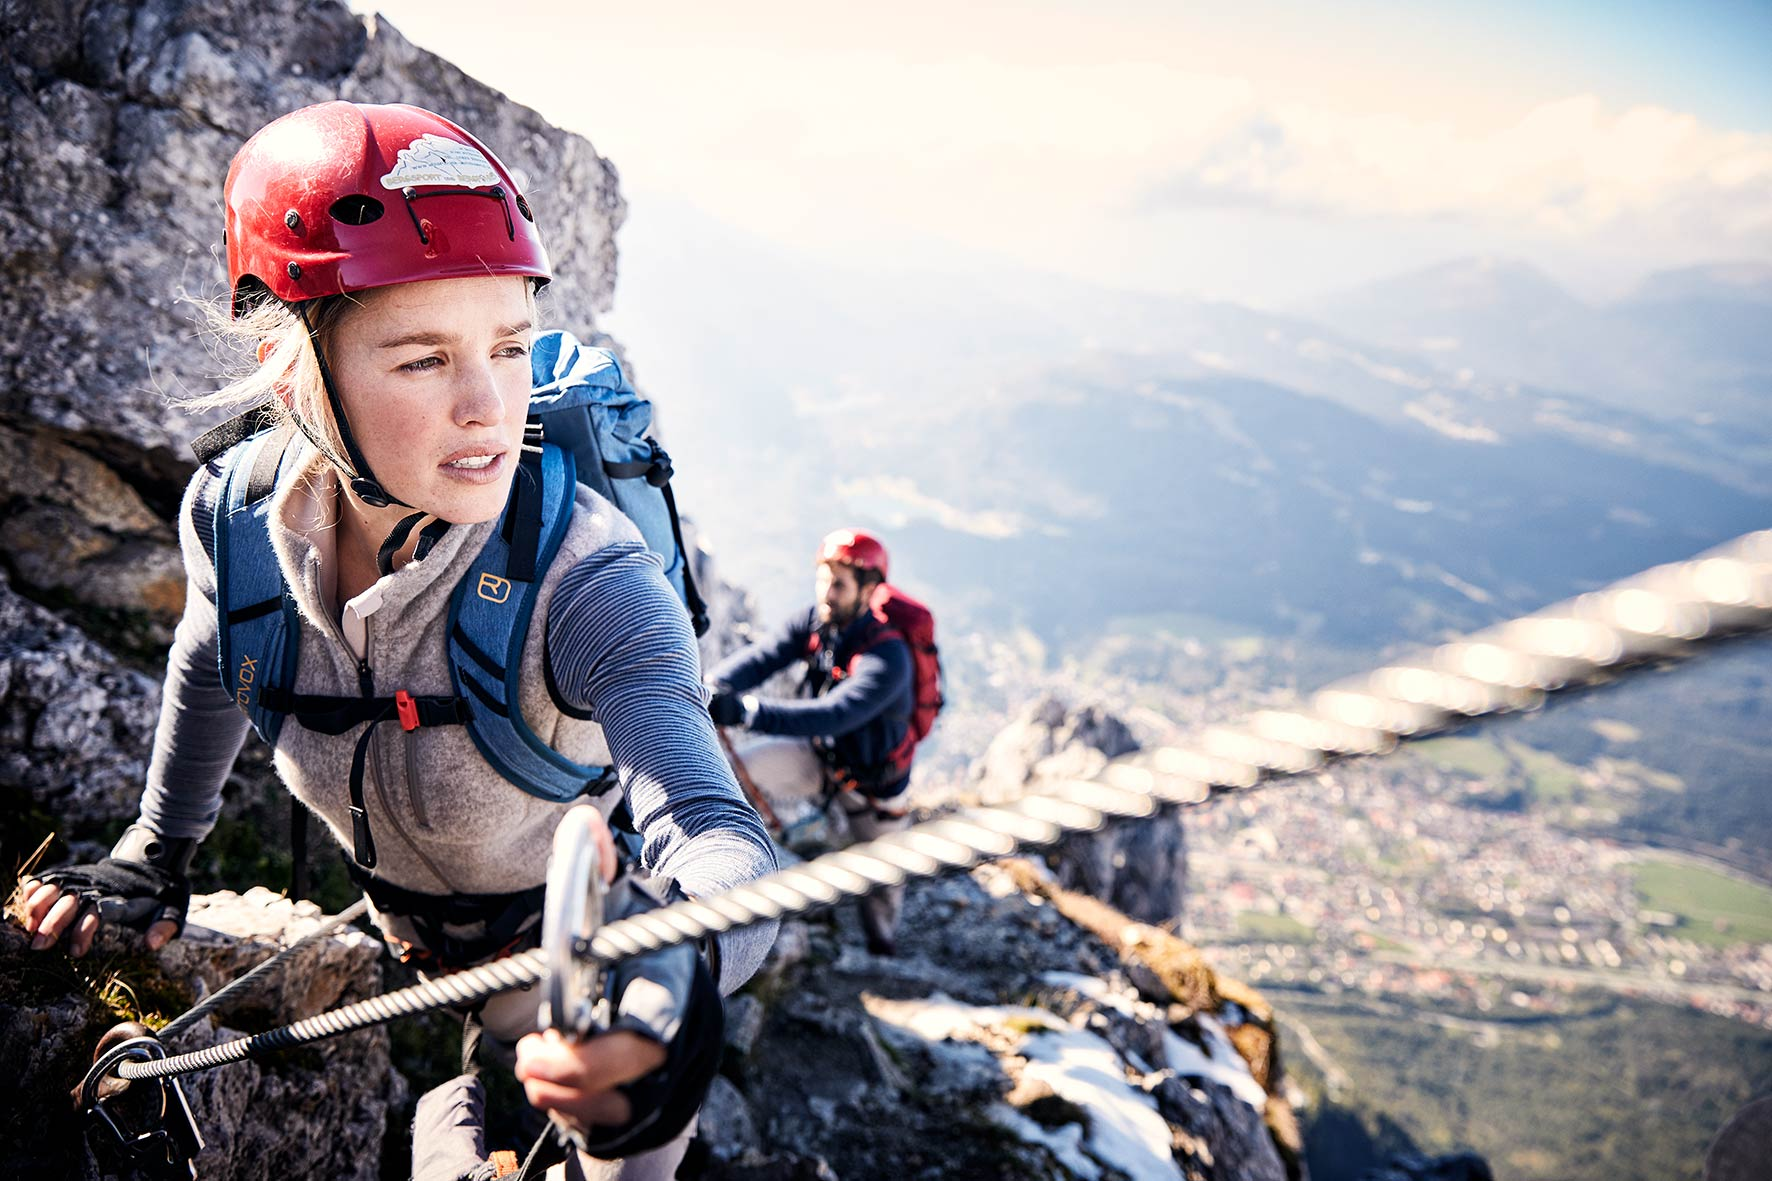 Sports photography models Hannah and Carlo climbing a via Ferrata at the Karwendel Mountain range, with Mittenwald in the background and far below them.